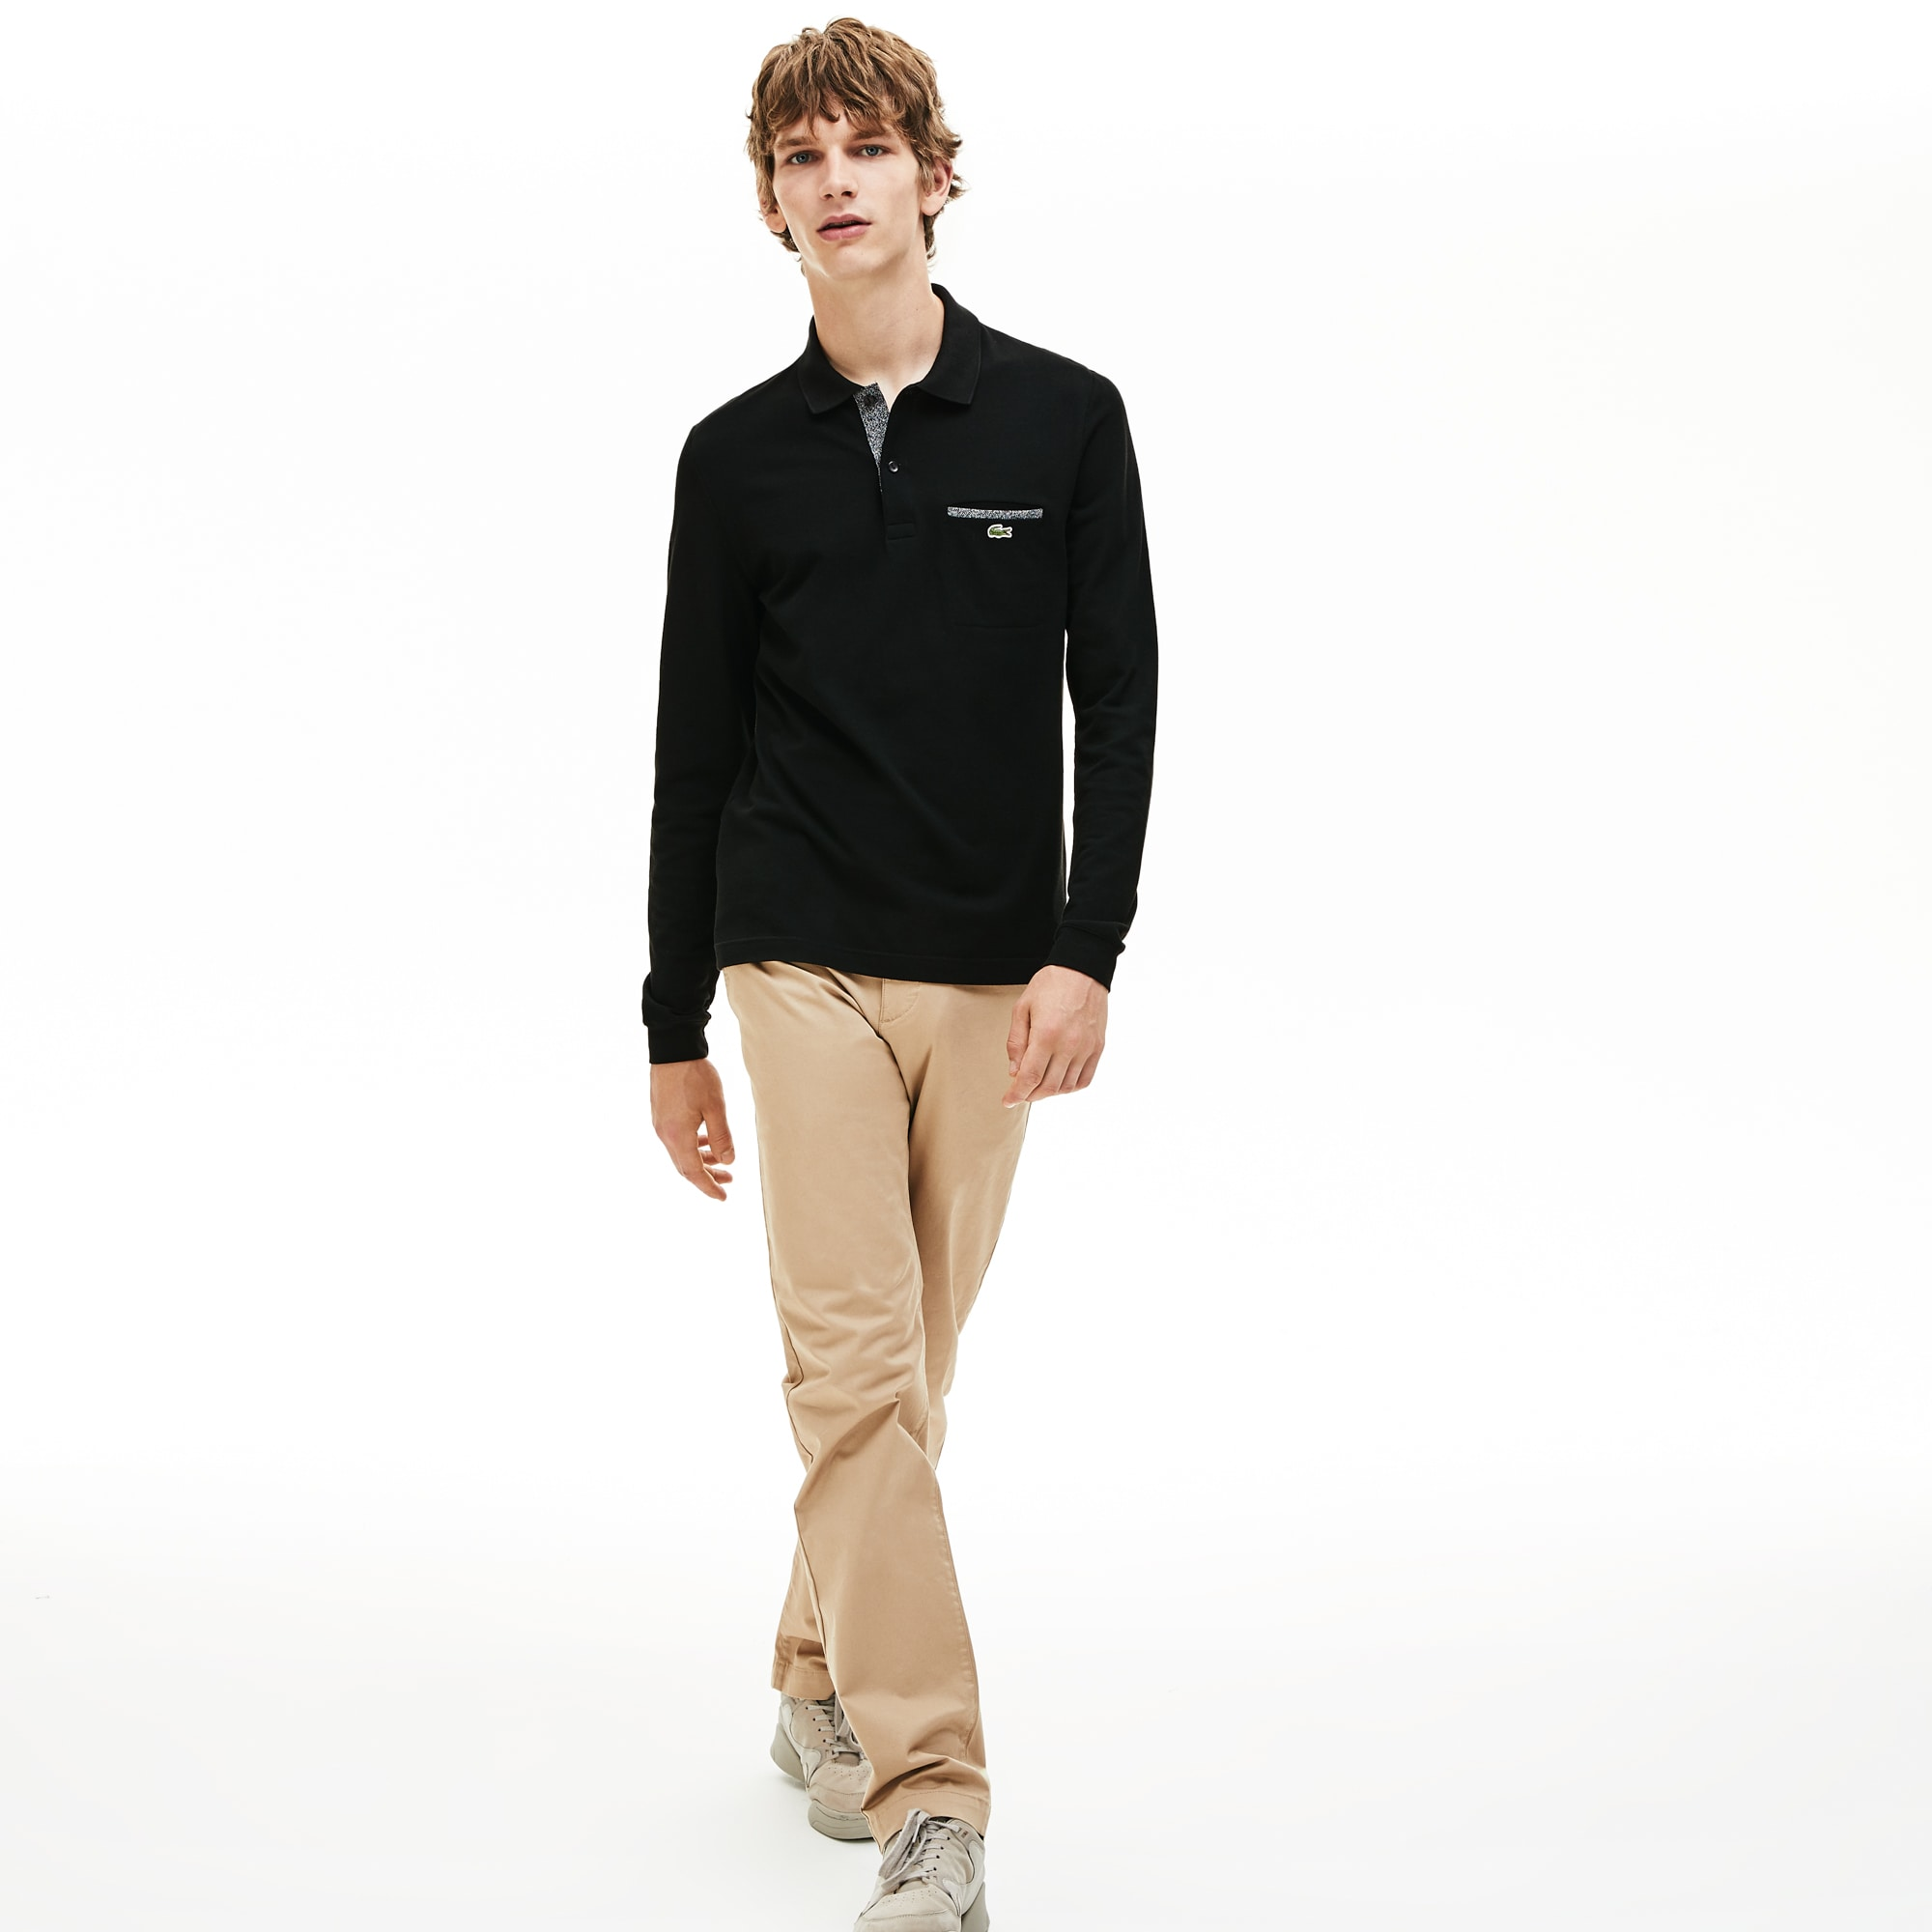 Men's Lacoste Regular Fit Pocket Polo Shirt